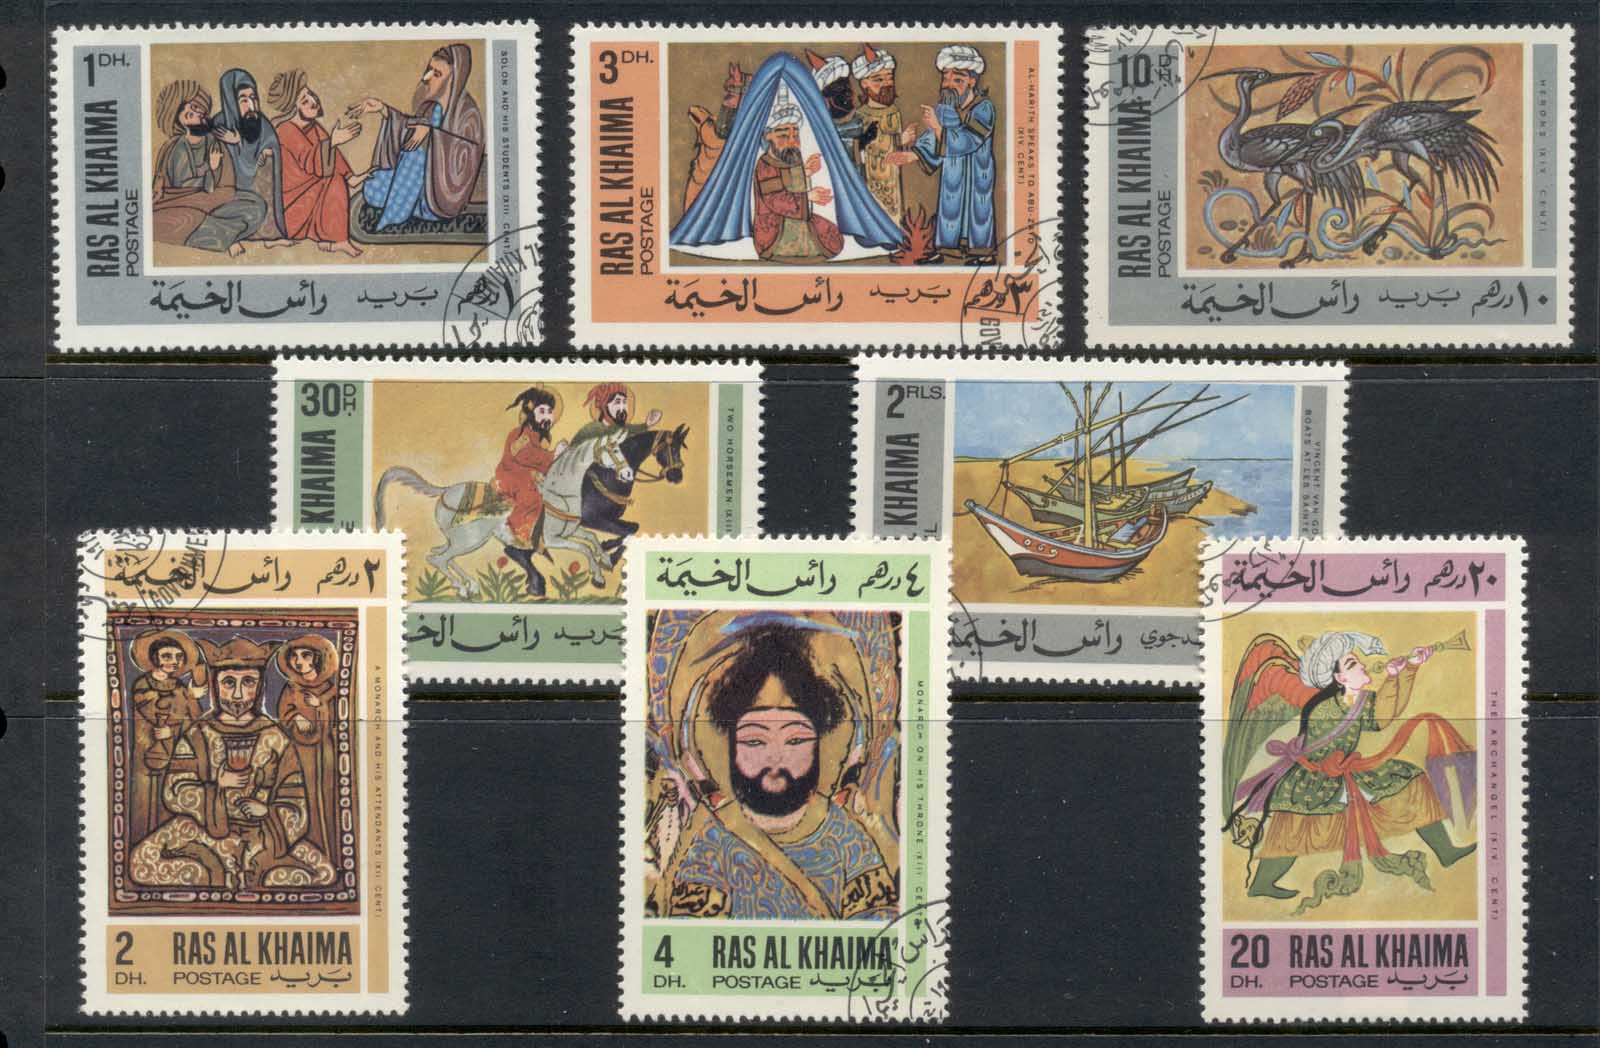 Ras Al Khaima 1967 Mi#167-173 Arab Miniatures & paintings from the 12th to 14th Centuries CTO